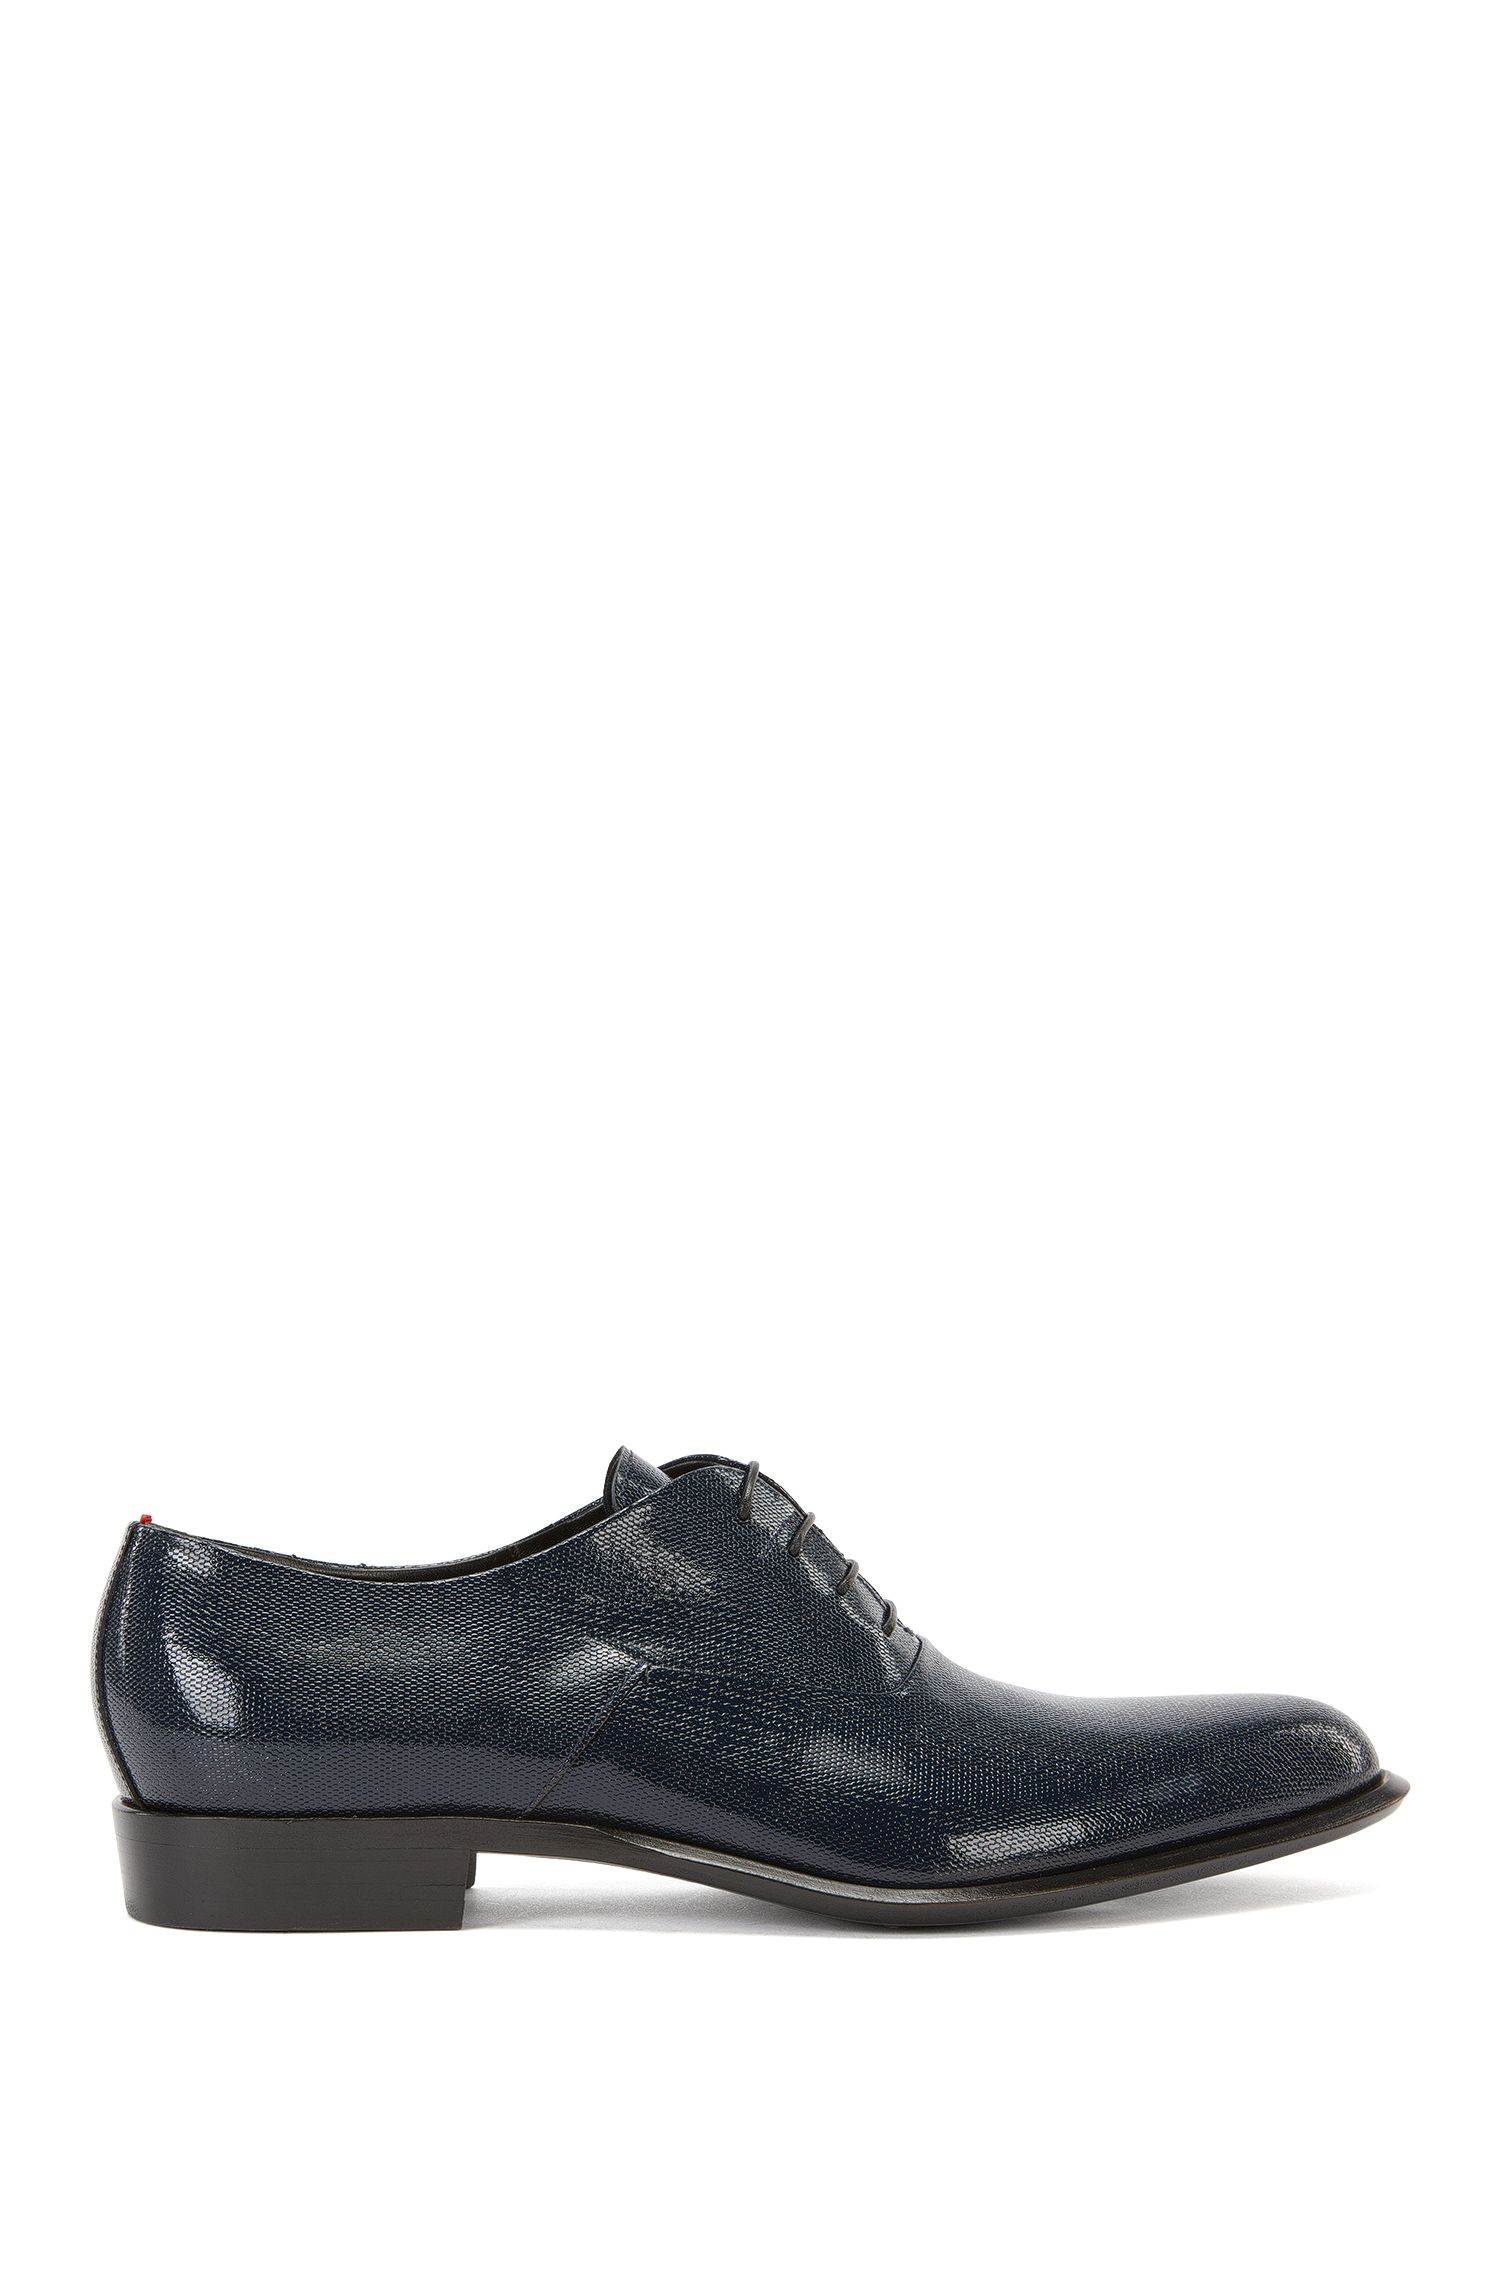 Lace-up Oxford shoes in printed leather